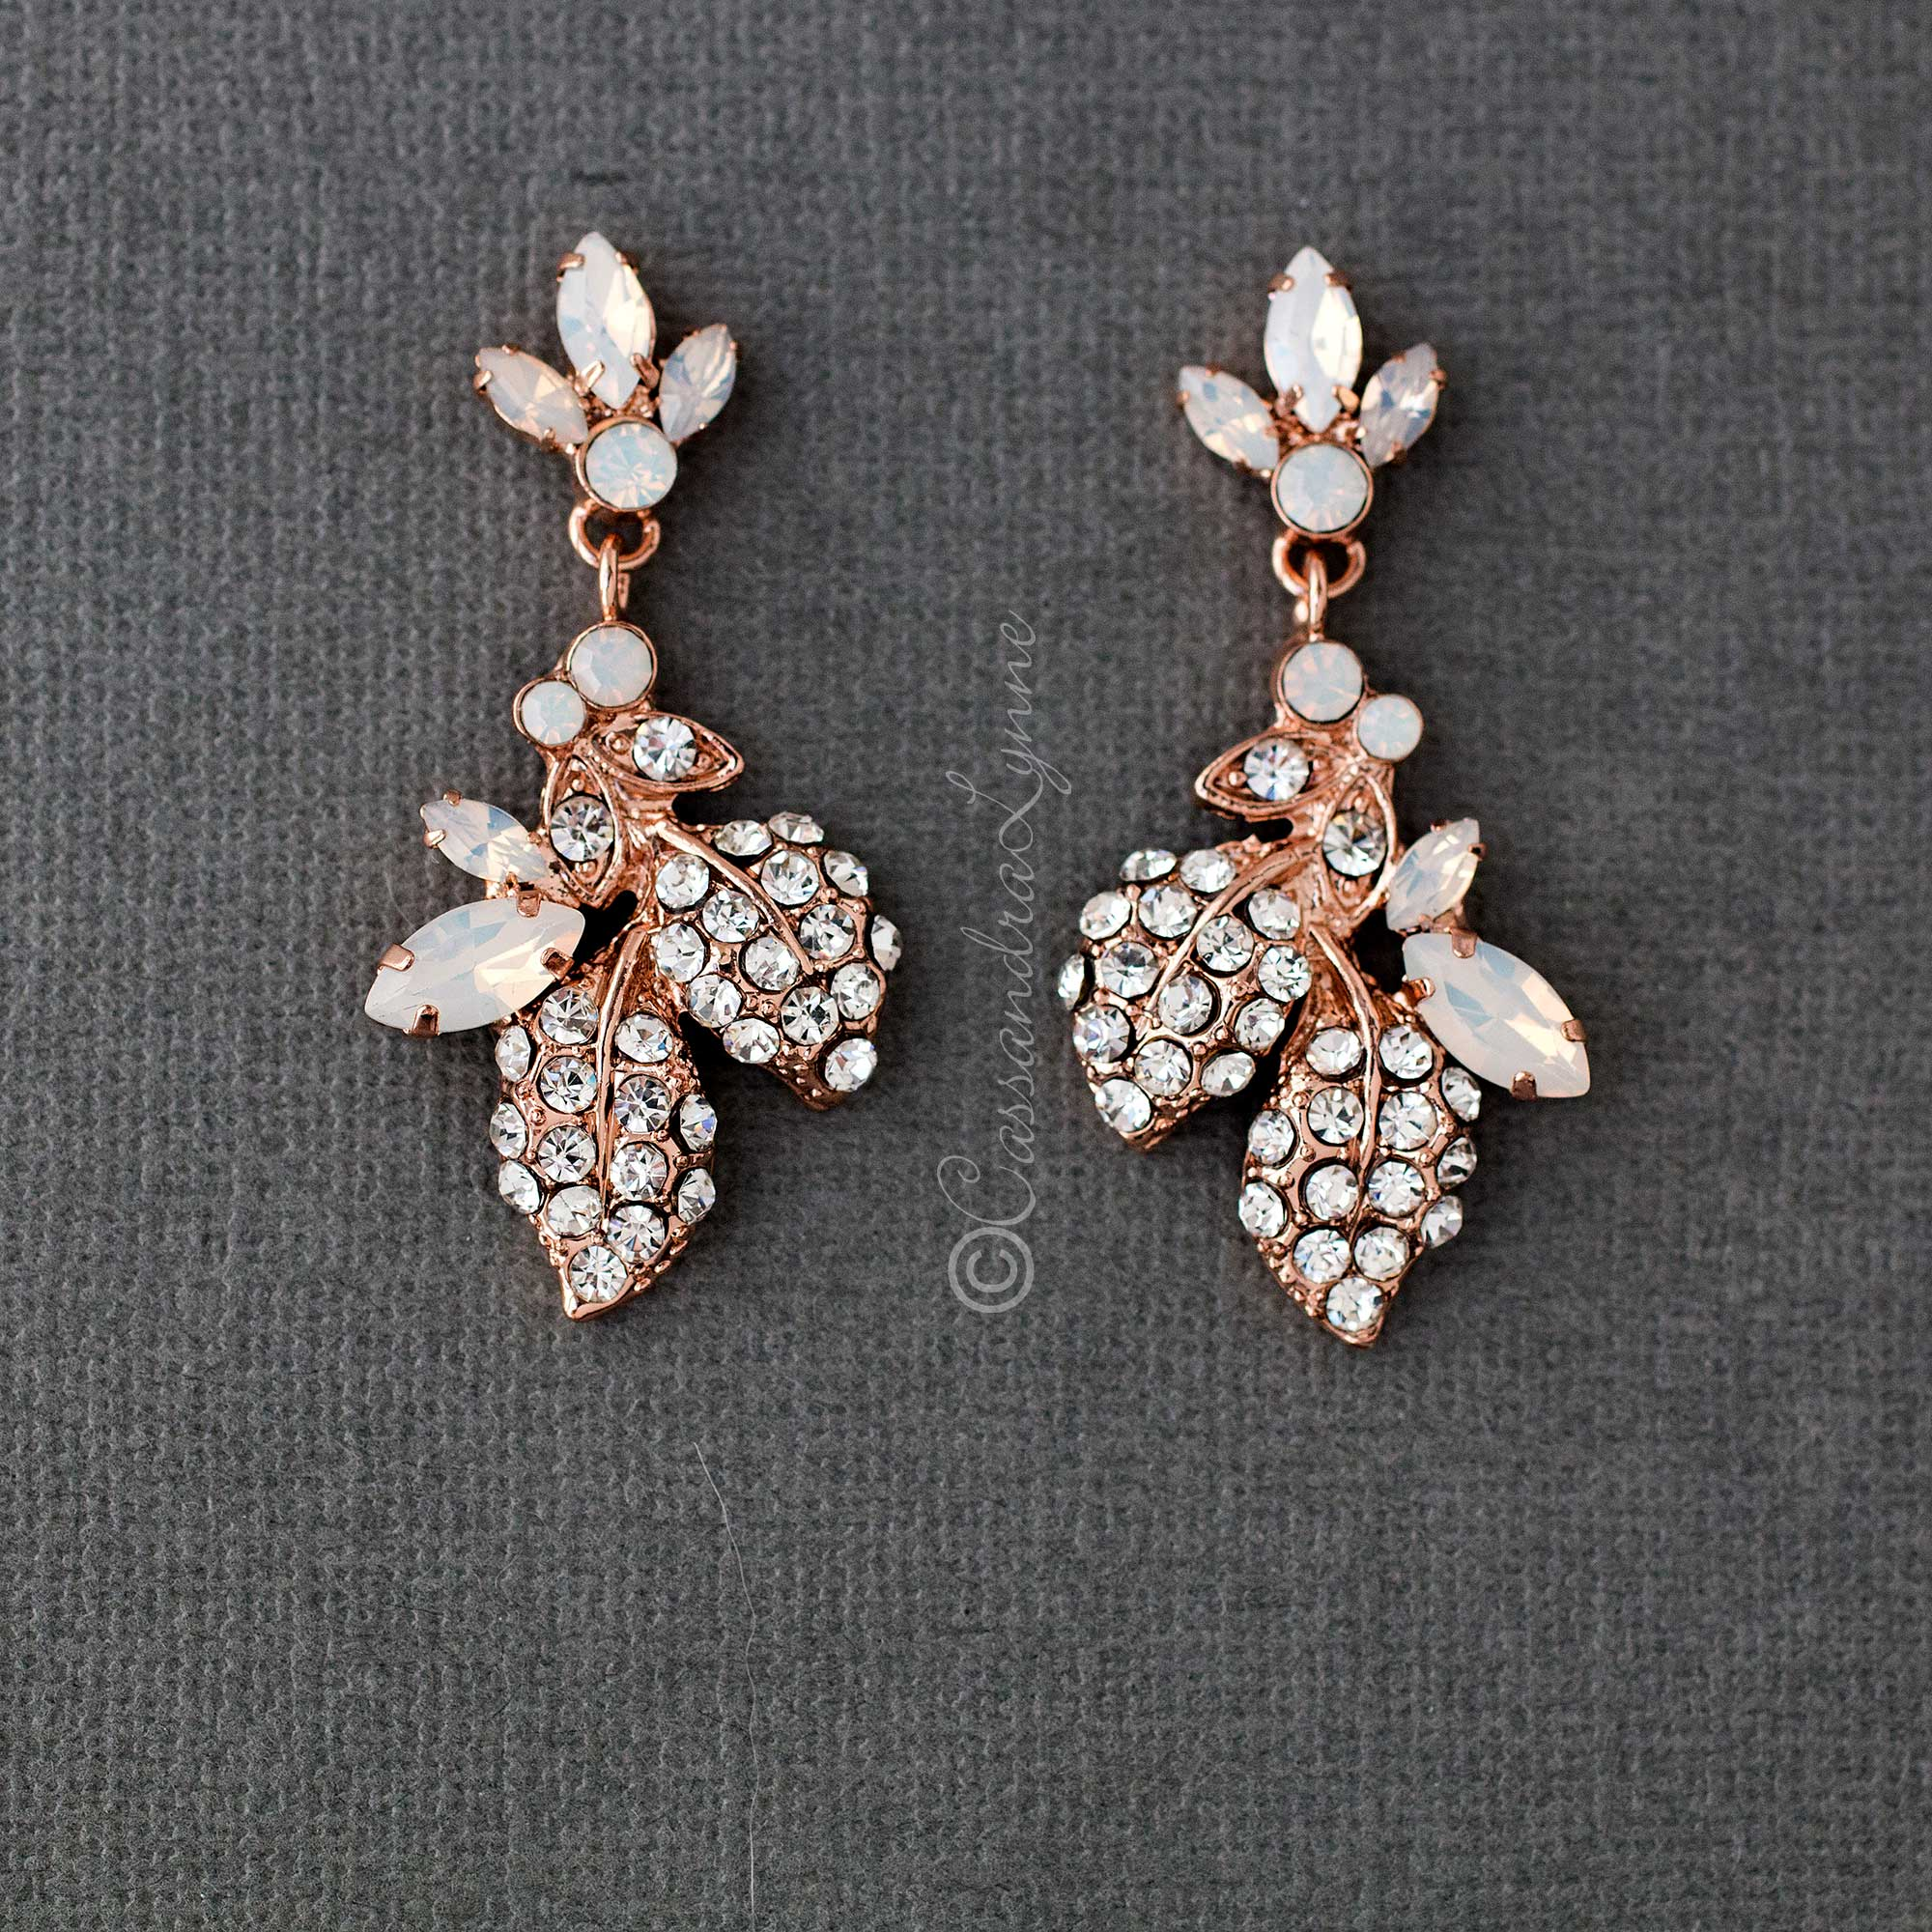 Crystal Leaves Wedding Earrings with Opal Stones